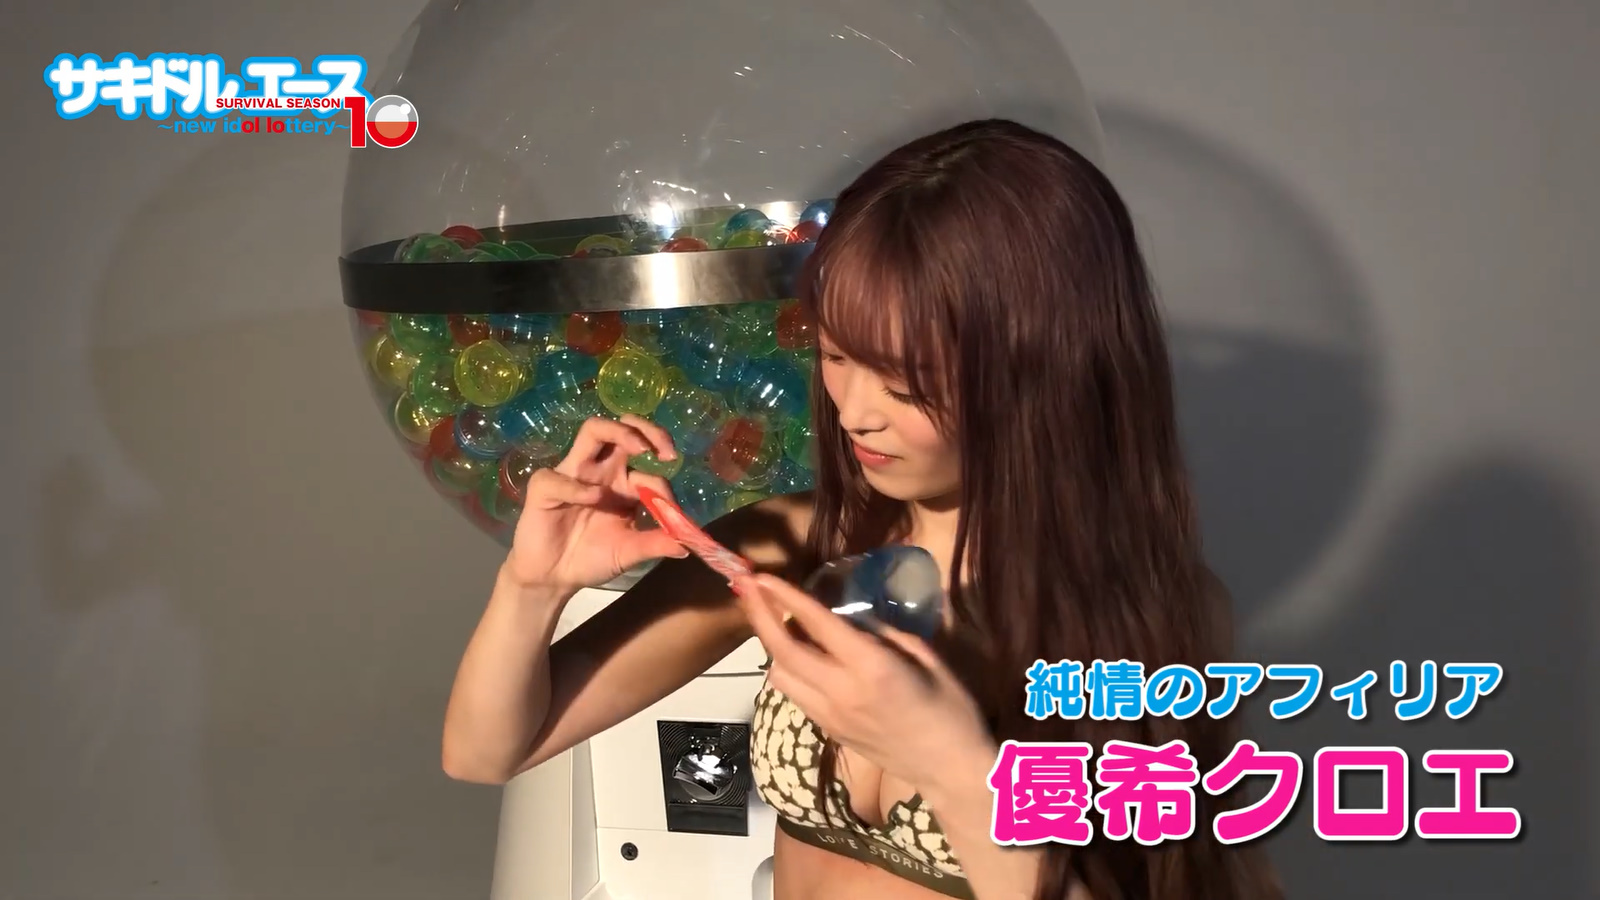 Sakidol Ace 10 Introduction Movie Capture of Swimsuit127